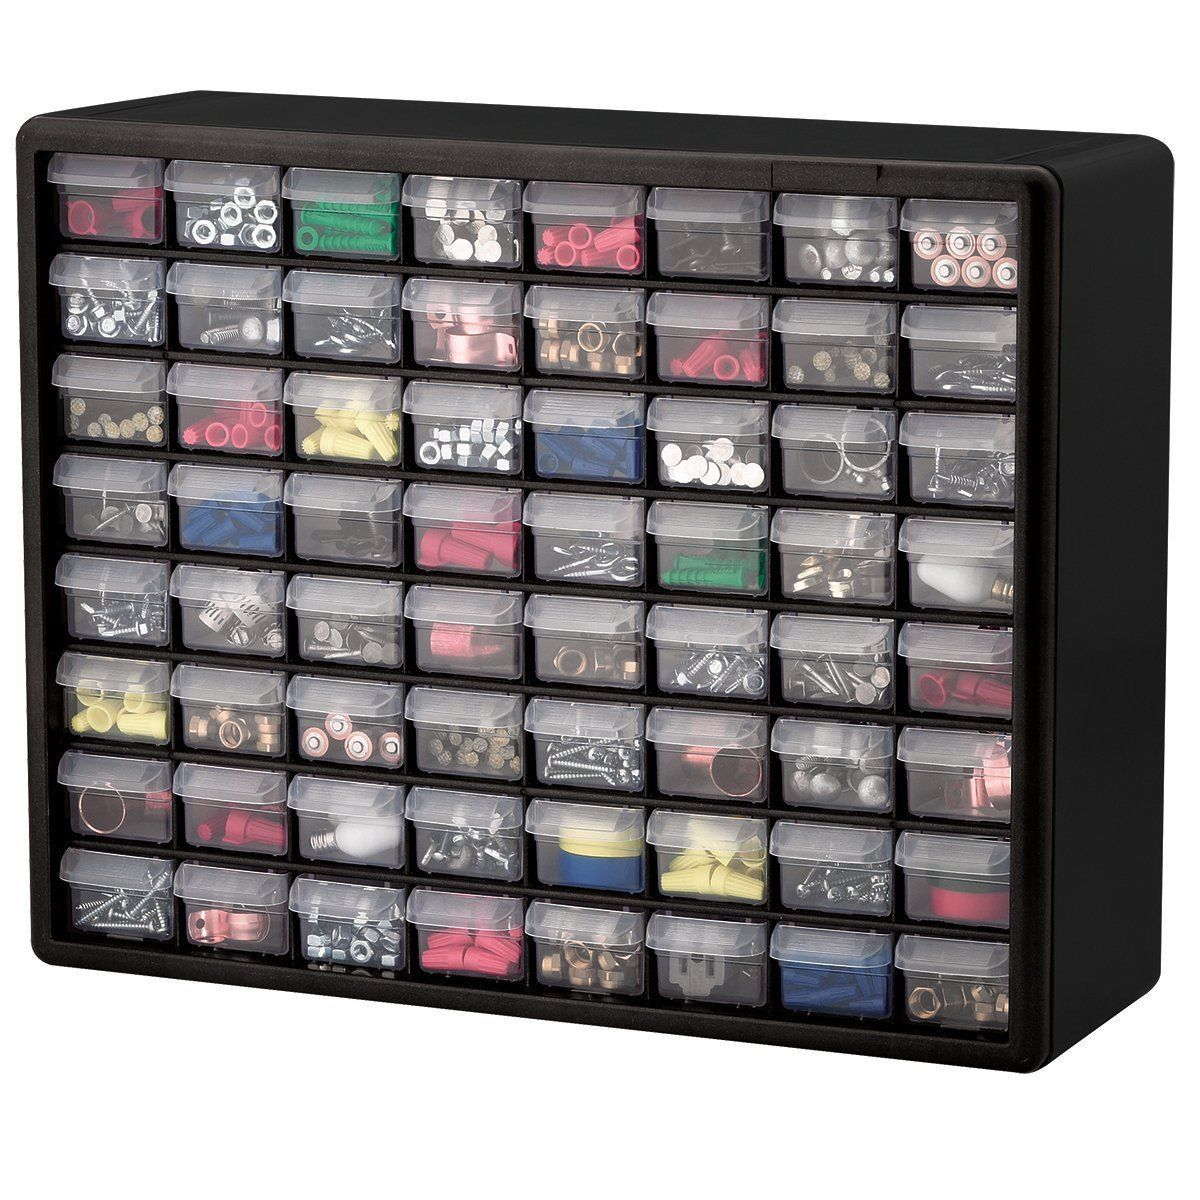 64 Drawer Plastic Parts Hardware Organizer Storage Cabinet Bin  # Muebles Sortimo